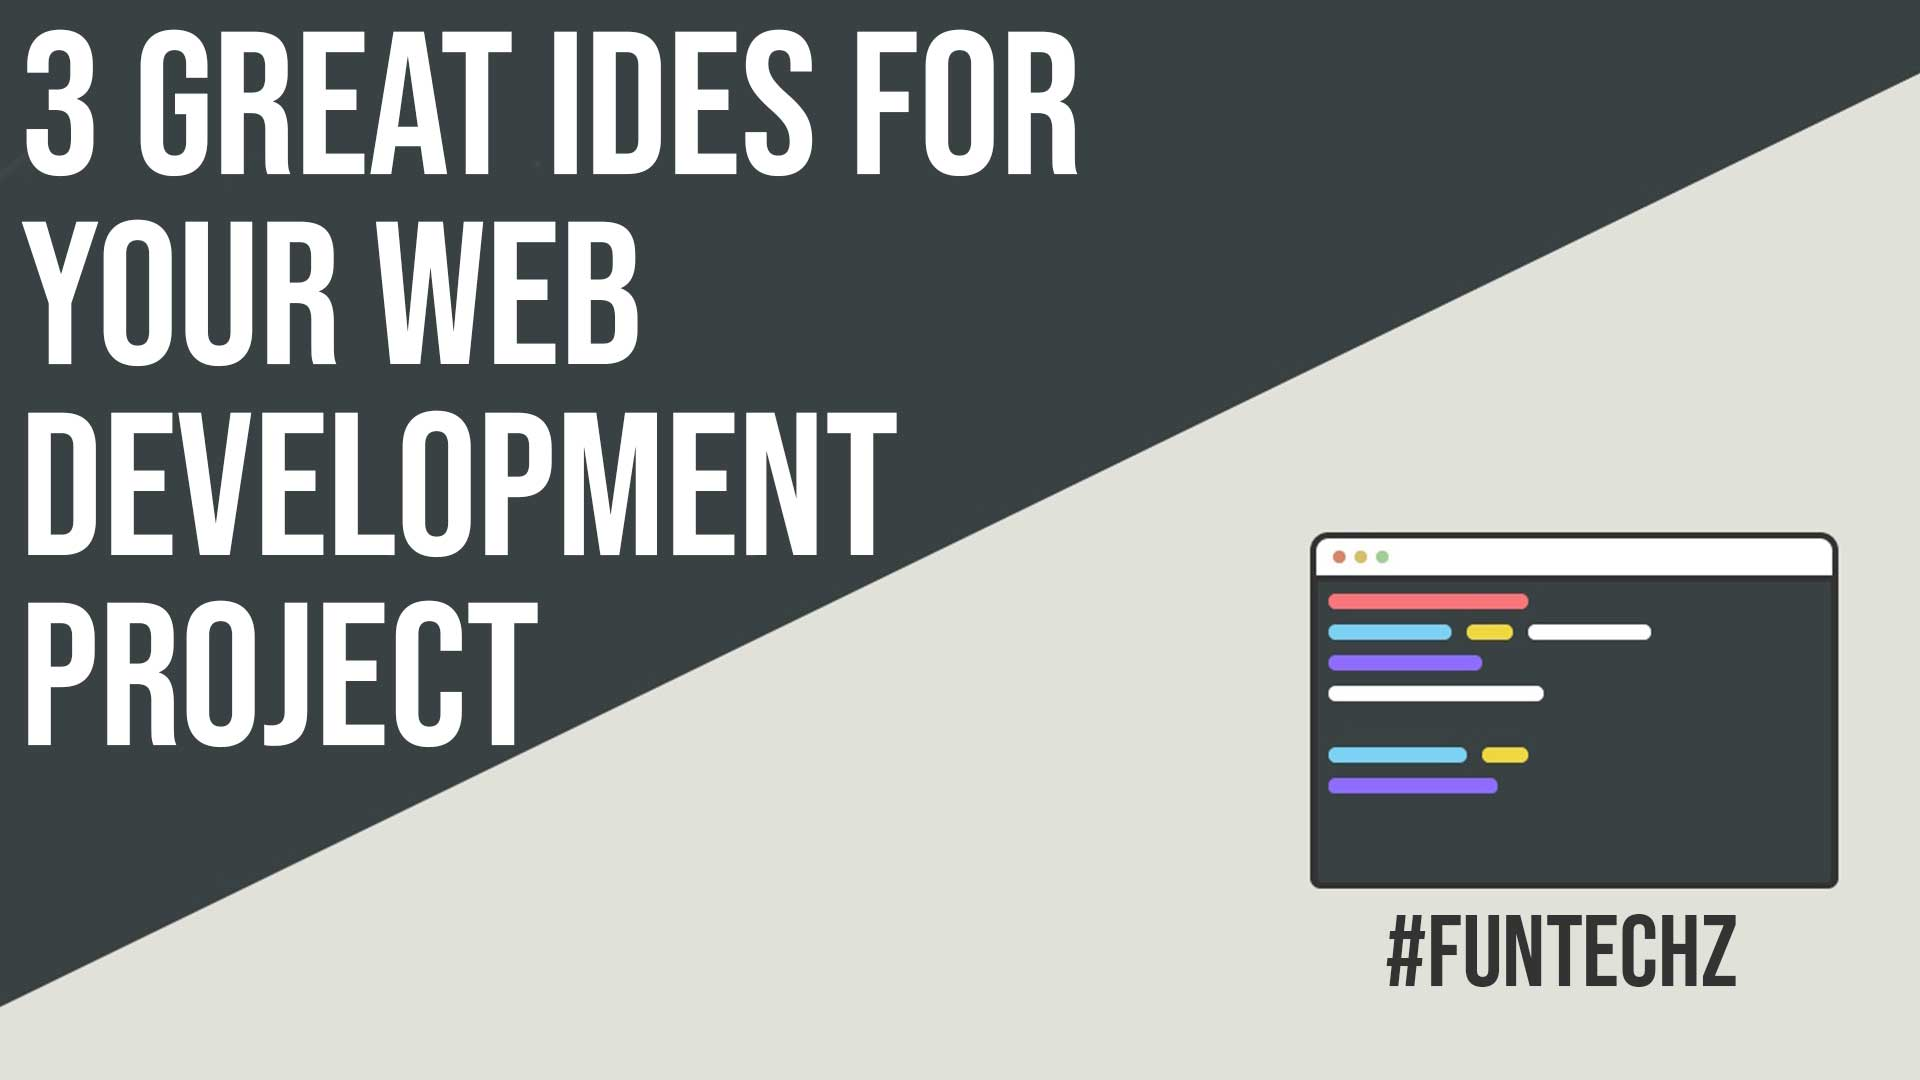 3 Great IDEs for Your Web Development Project